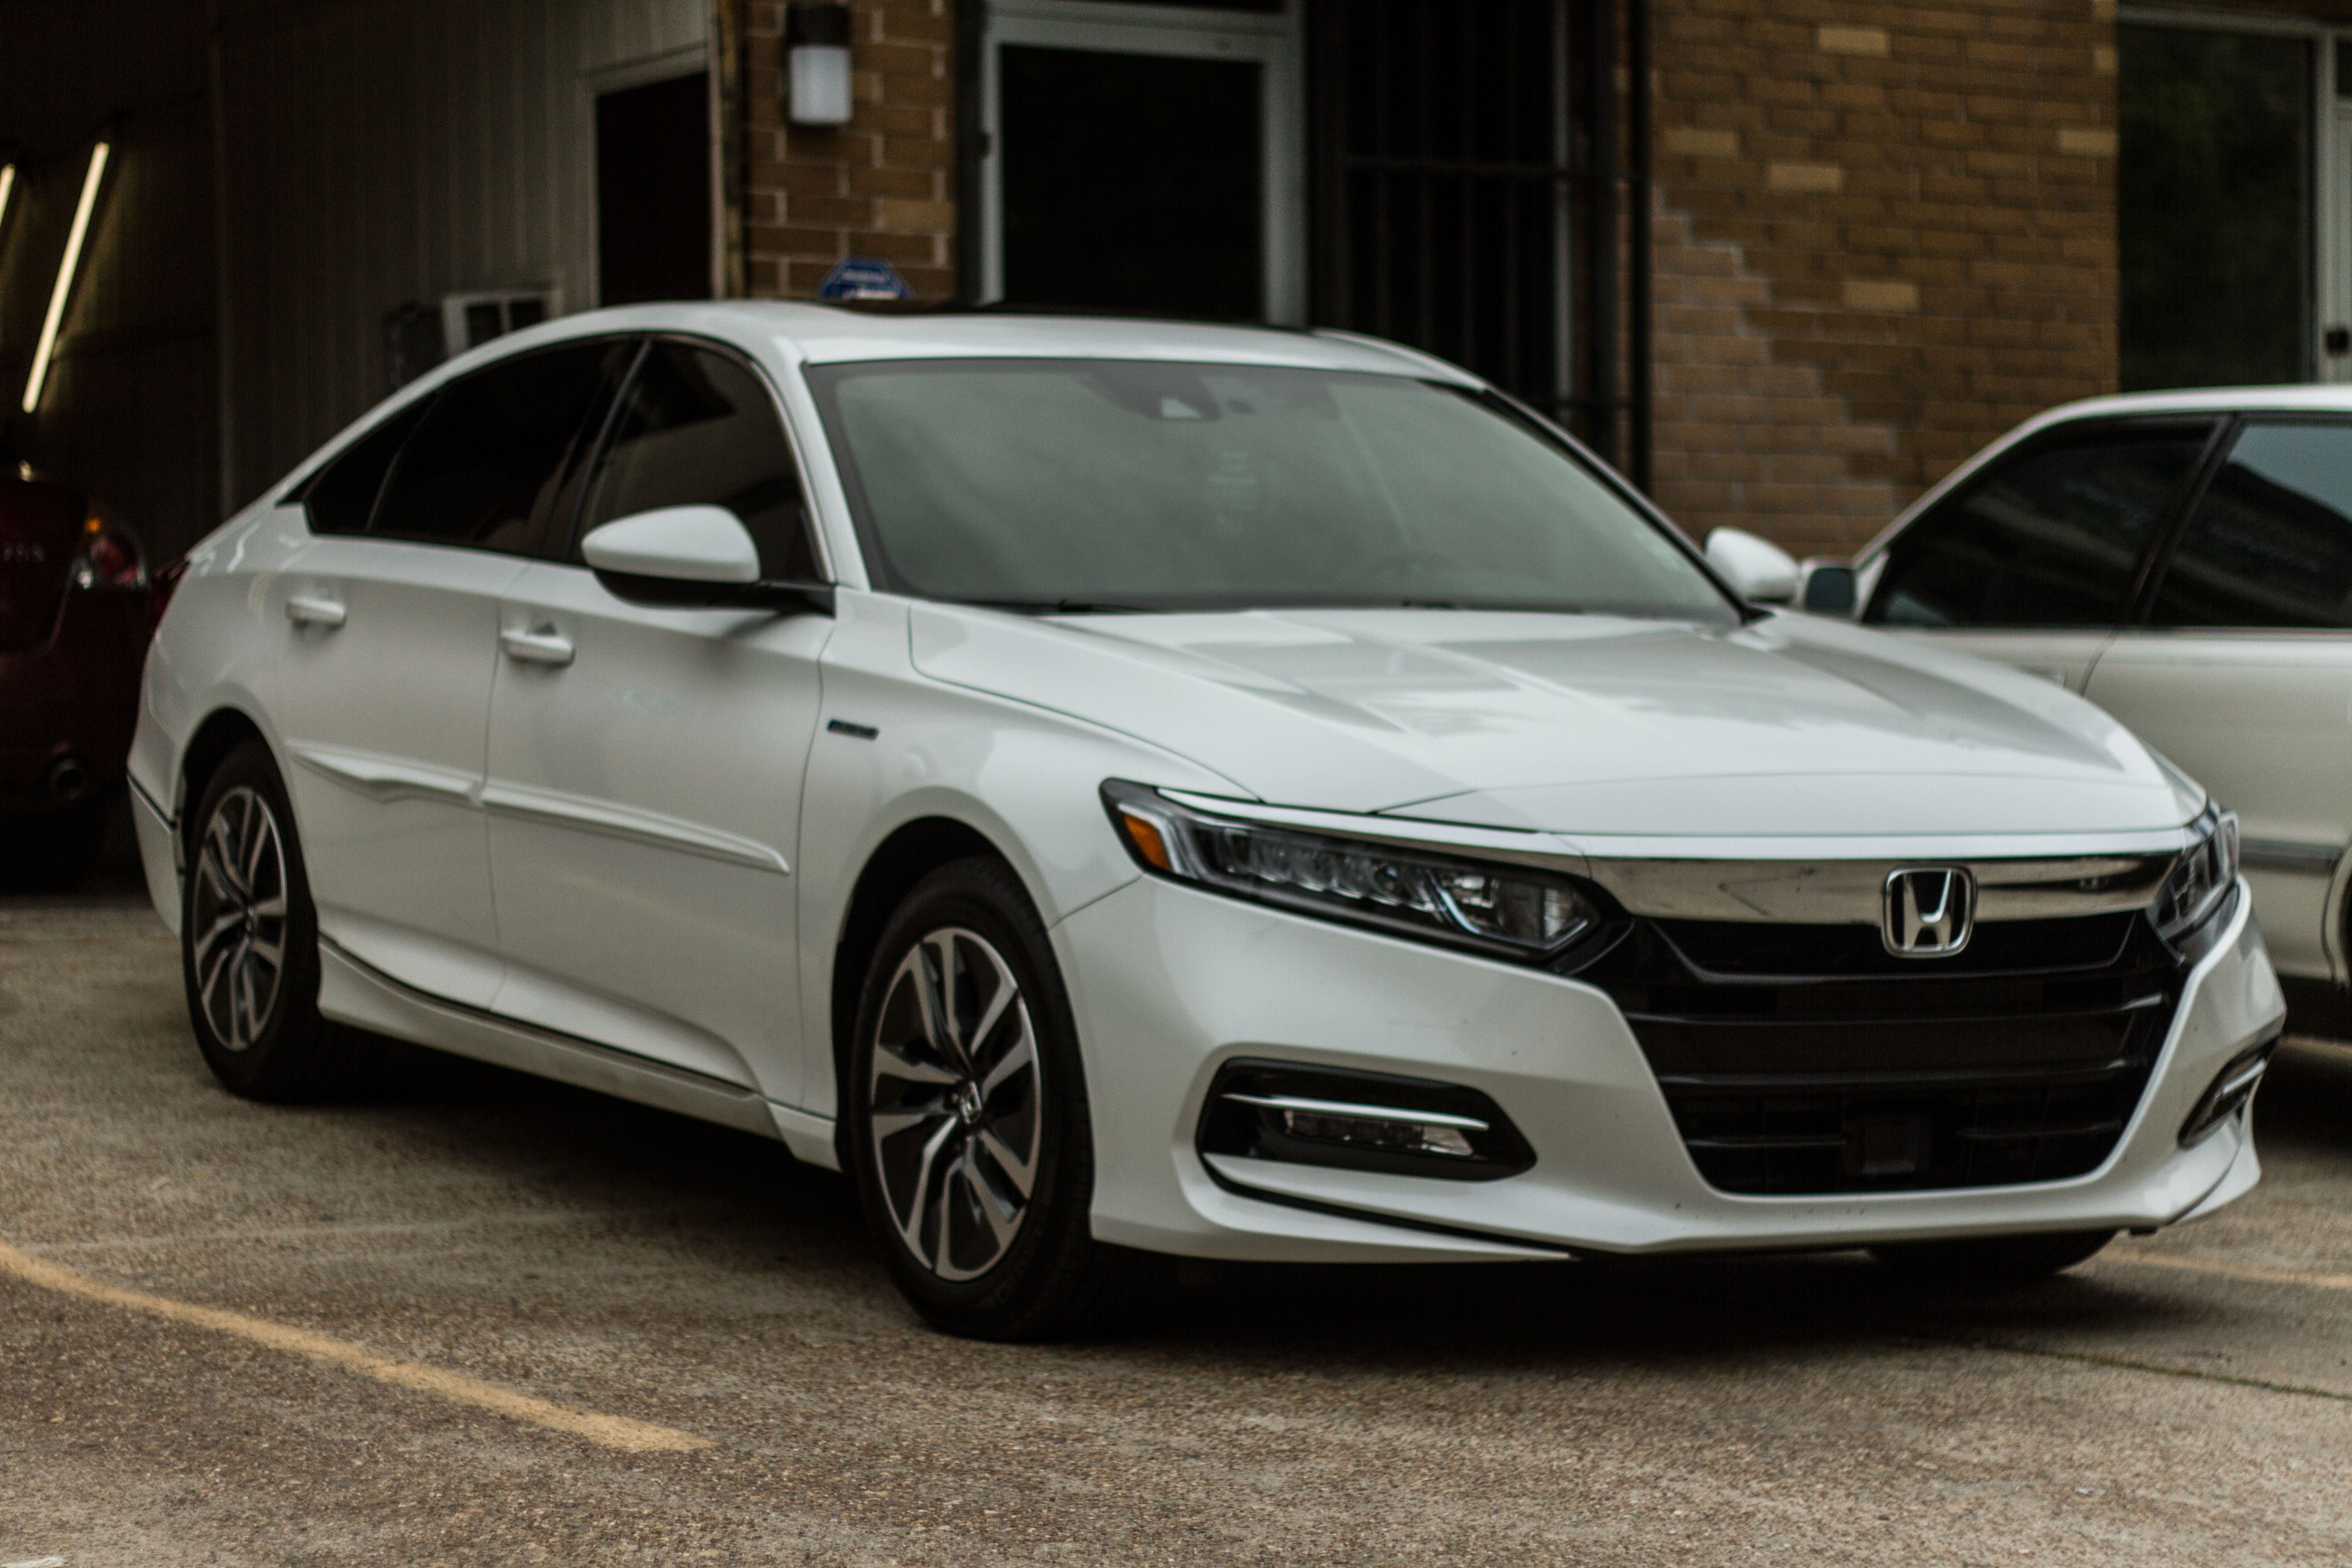 medium resolution of 2018 honda accord tinted with ceramic on all sides back windshield sunroof ceramic tint is the most effective tint in heat reduction and will preserve